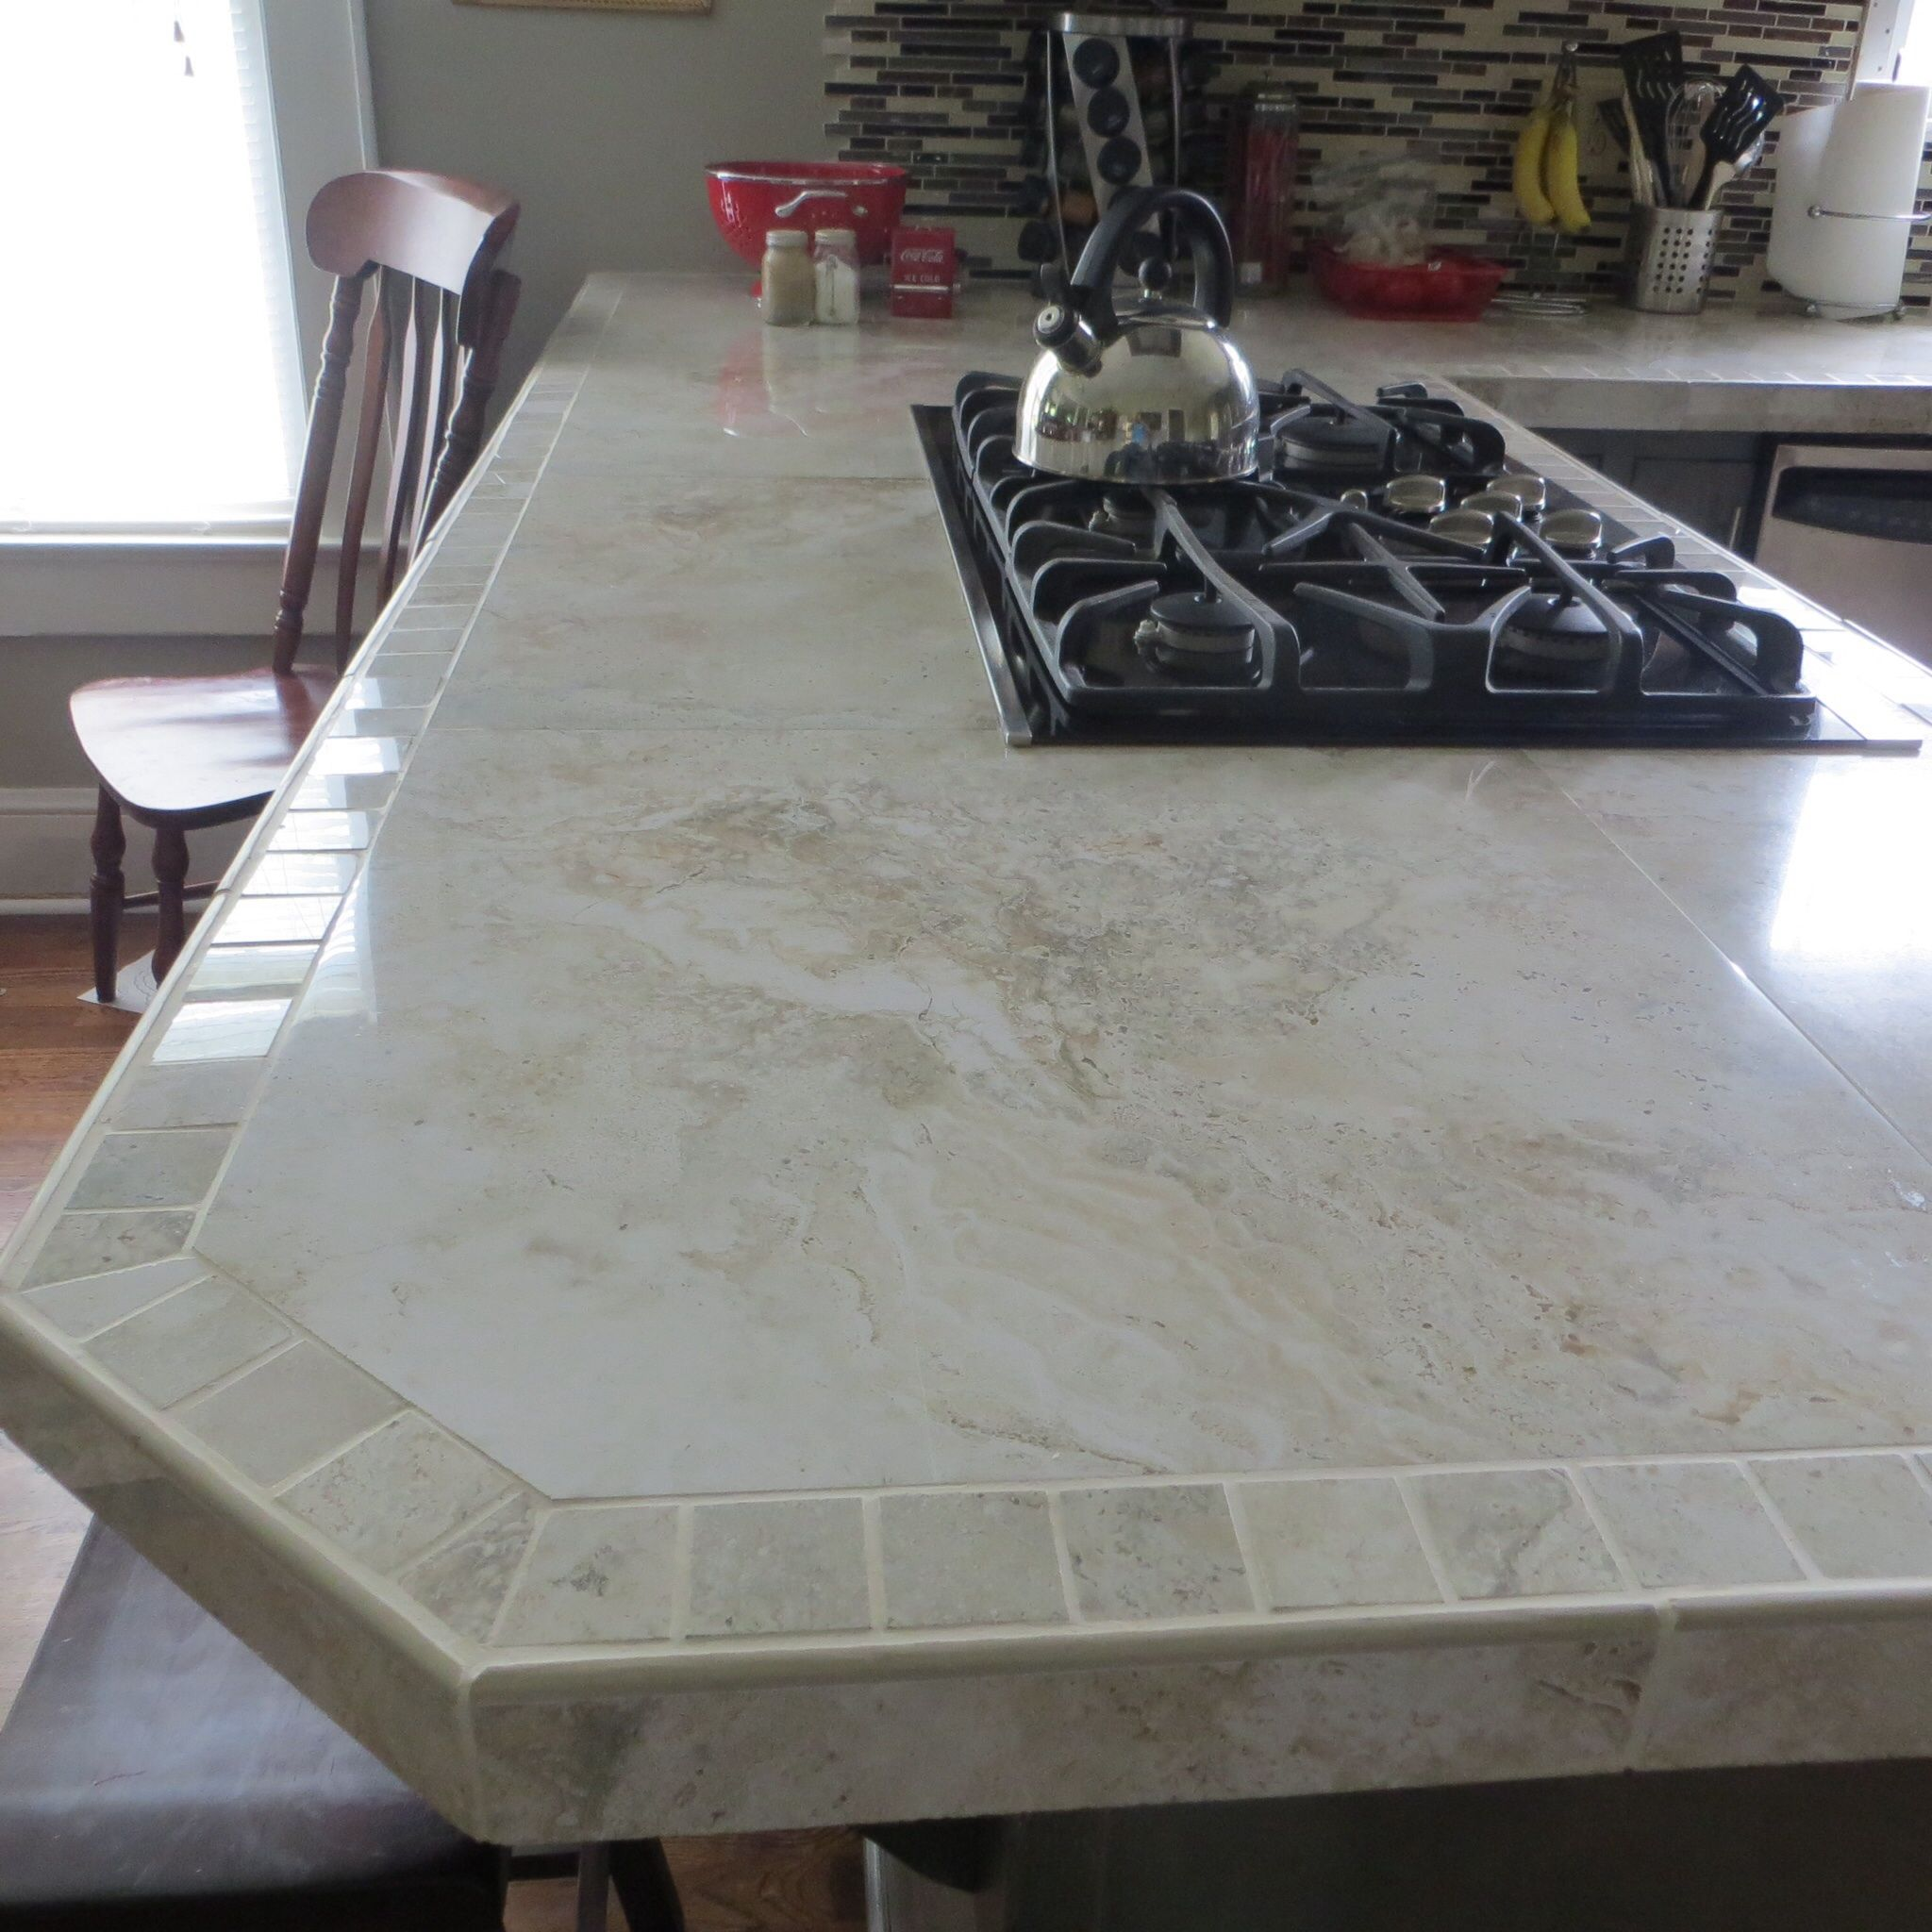 Diy Tile Countertop Removal: I Used 24x24 Inch Polished Porcelain Tiles For The